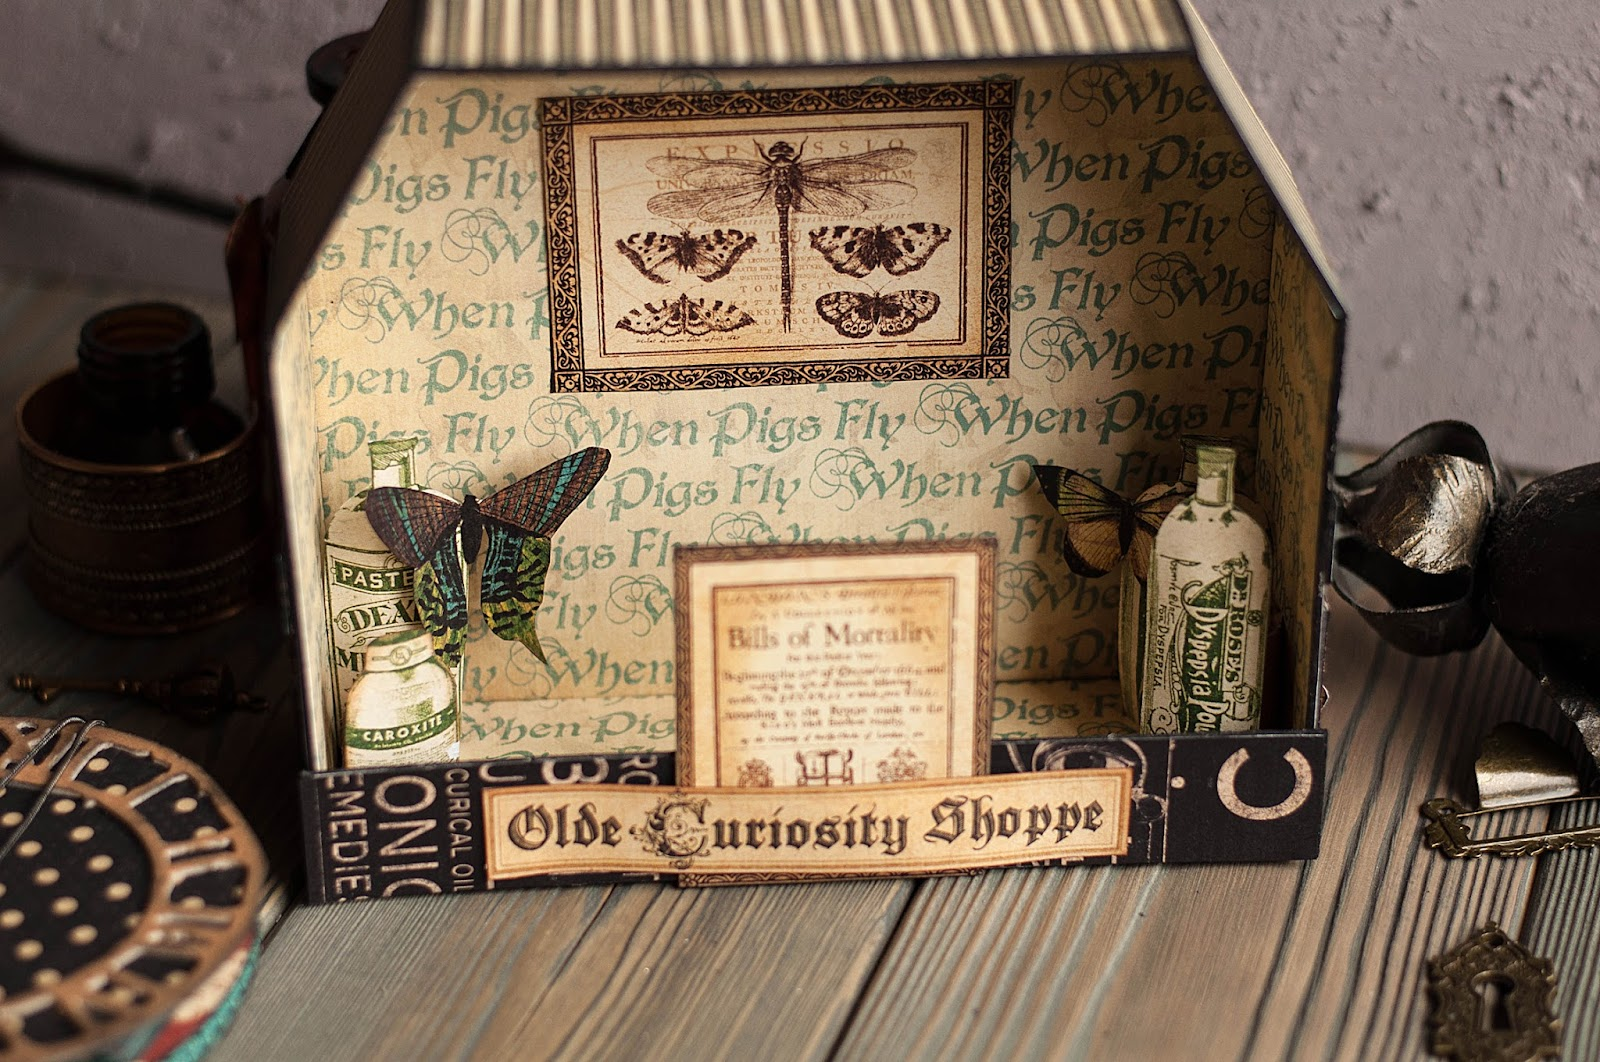 Olde Curiosity Shoppe-Album and Shoppe-tutorial by Lena Astafeva-products by Graphic 45-46.jpg